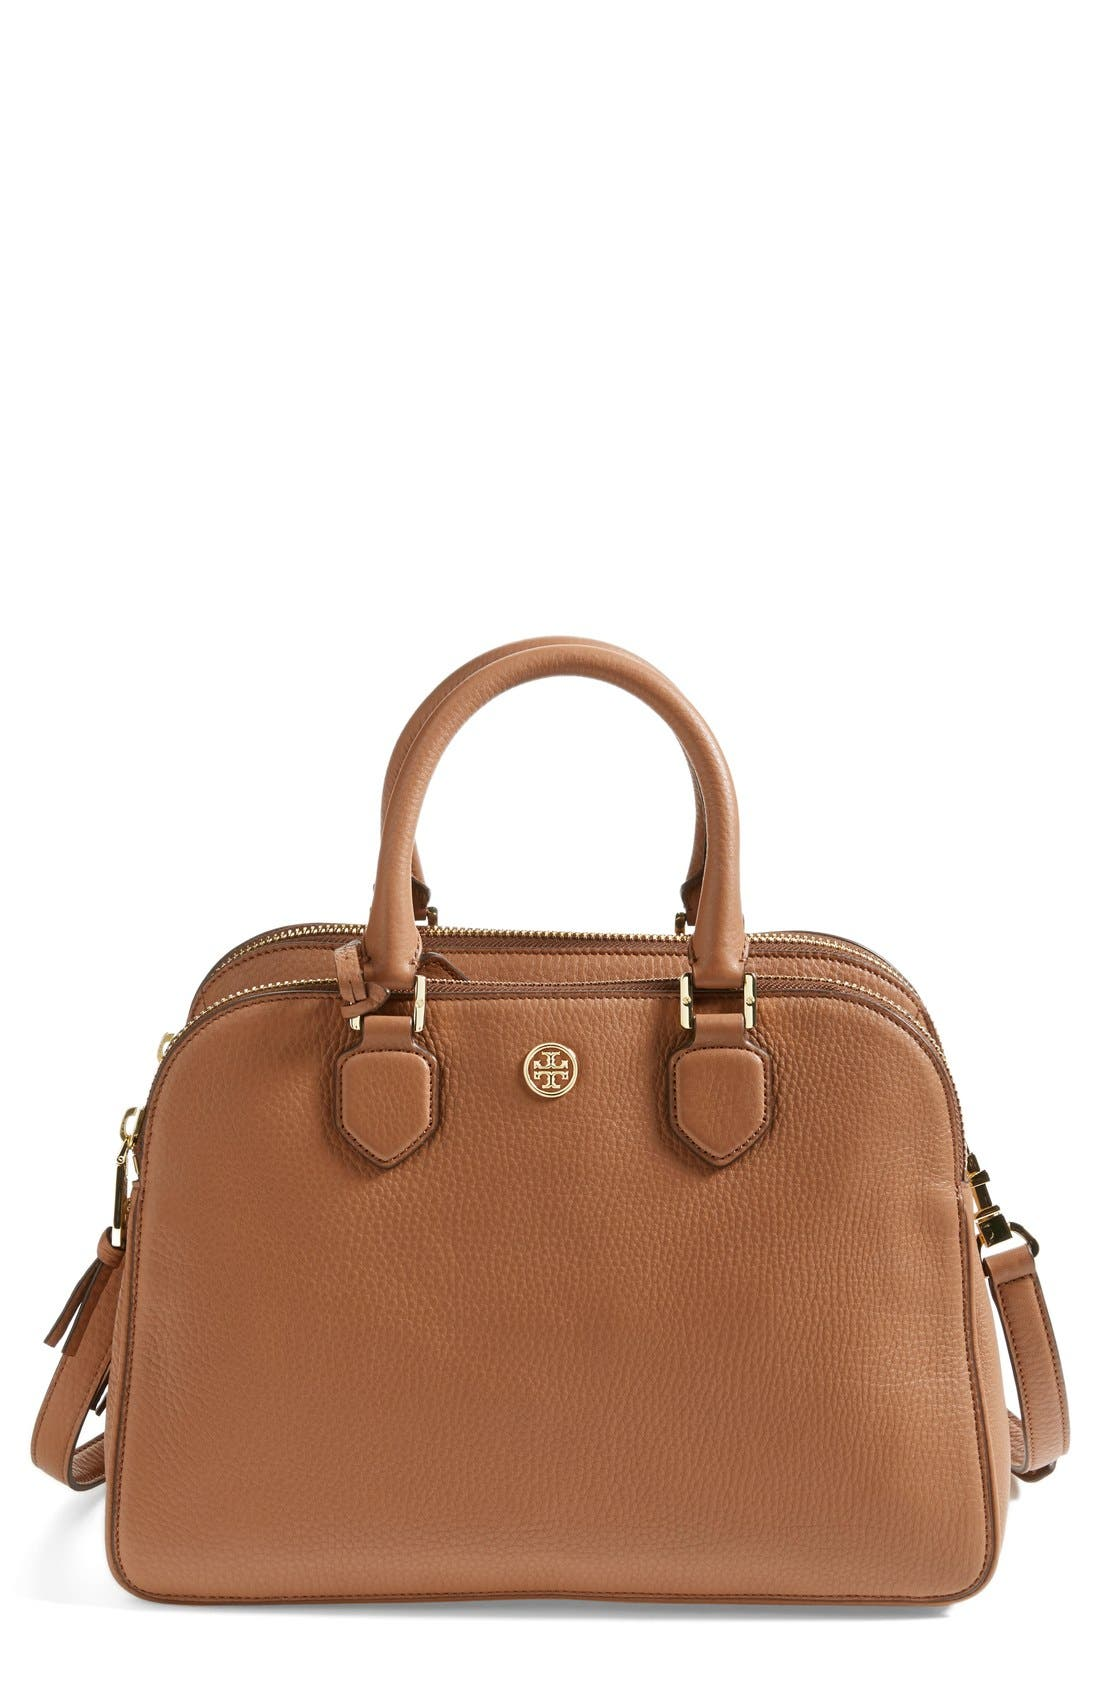 Main Image - Tory Burch 'Robinson' Triple Zip Leather Satchel